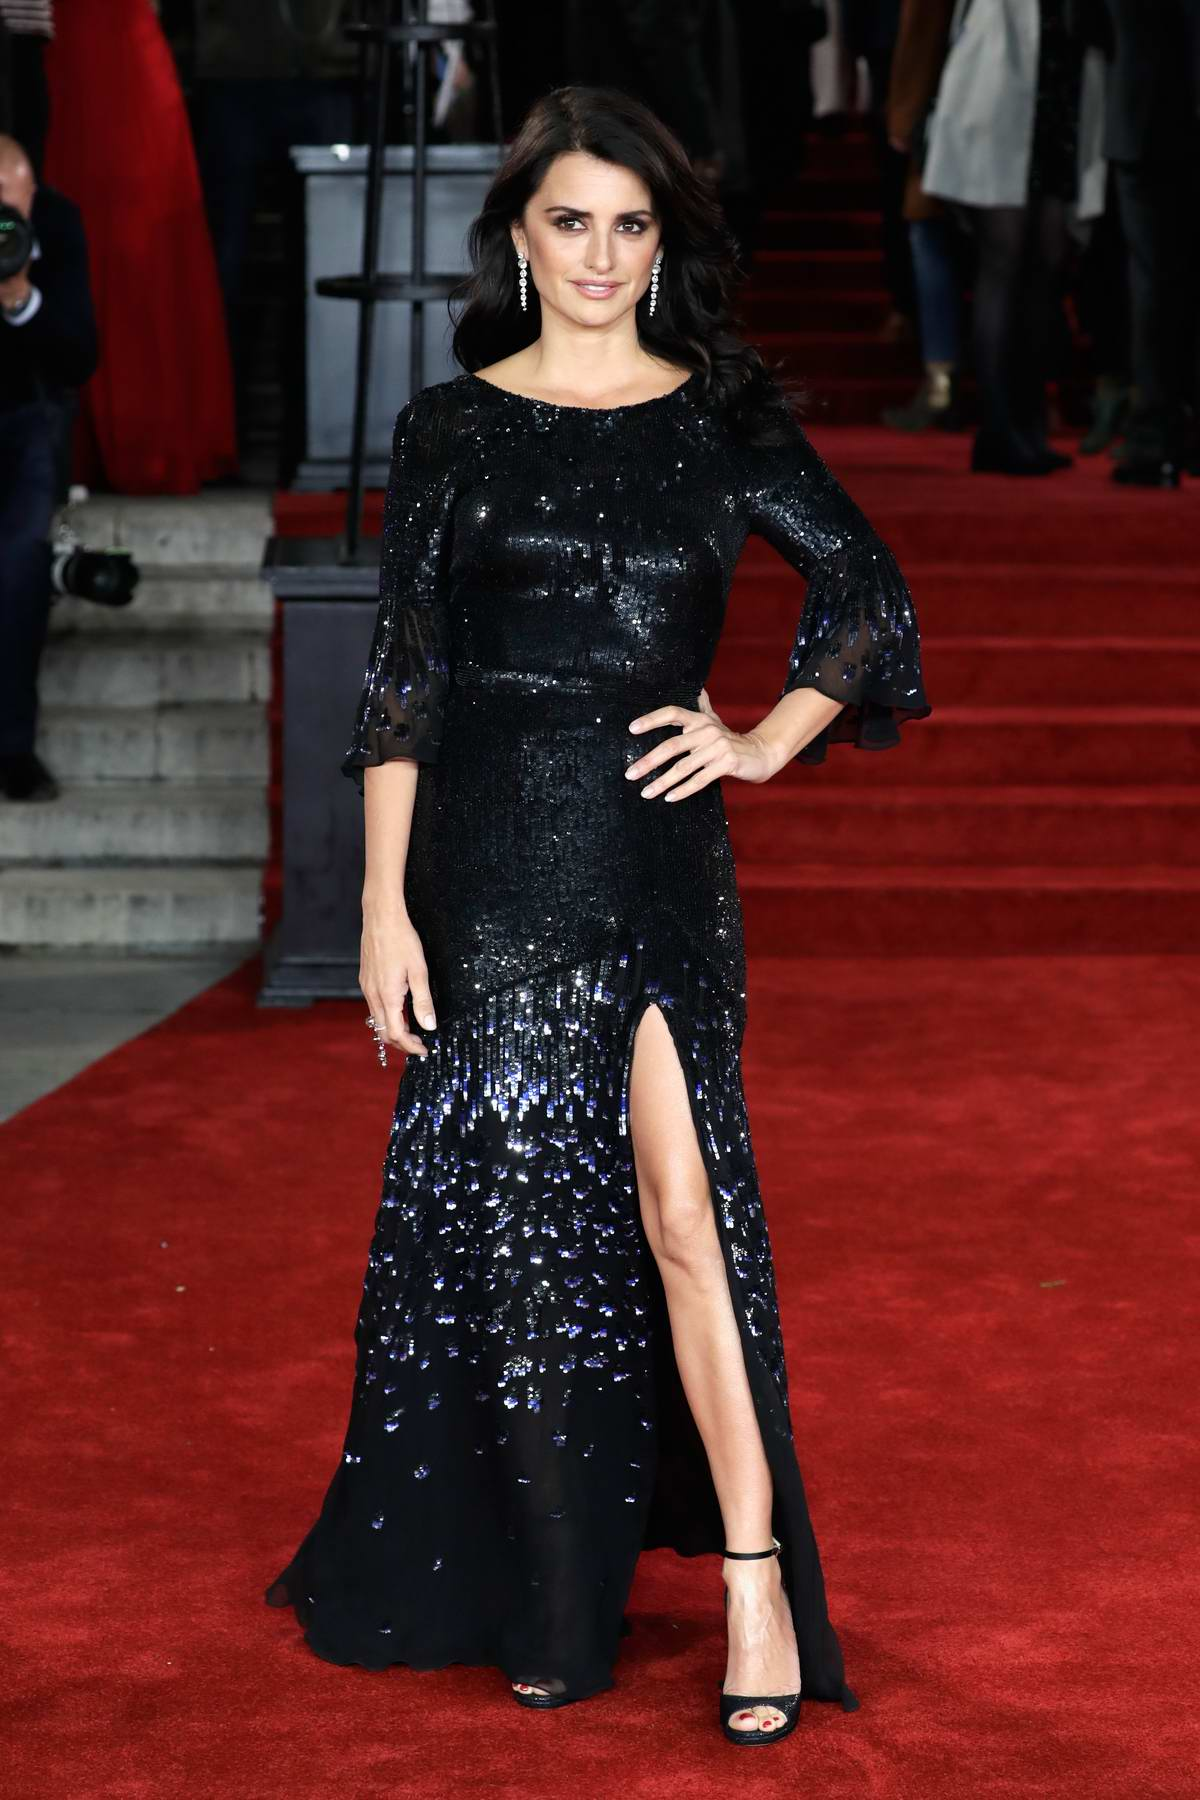 penelope cruz attends the premiere of 'murder on the ...